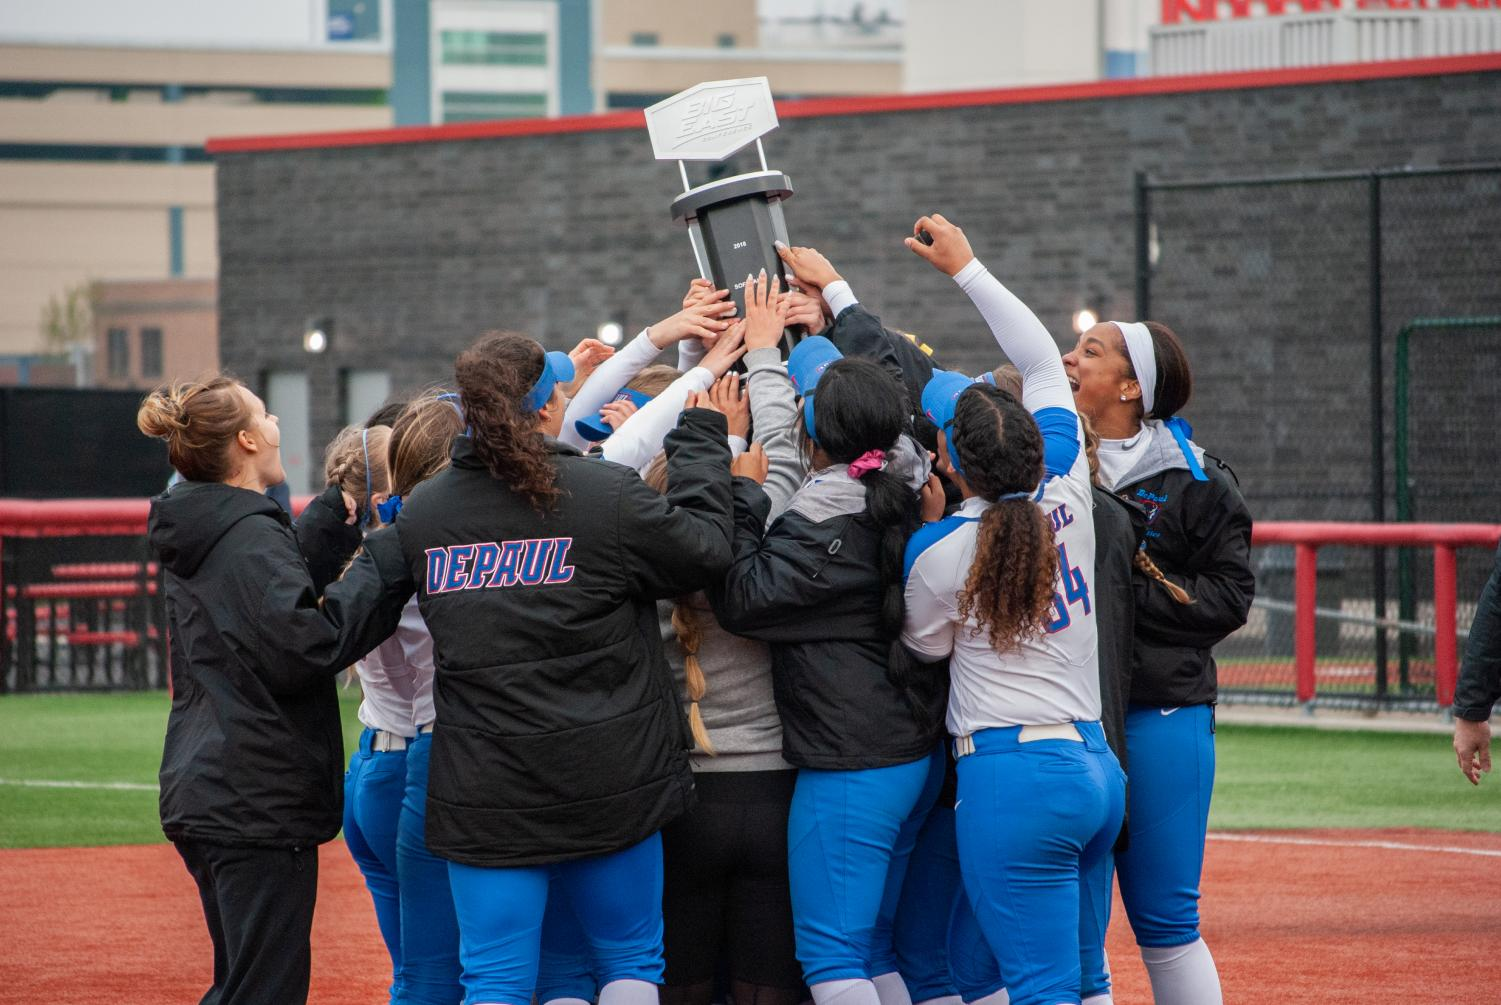 DePaul's softball team celebrates in the pitching circle at The Ballpark in Rosemont, Illinois Saturday after winning a second-straight title.